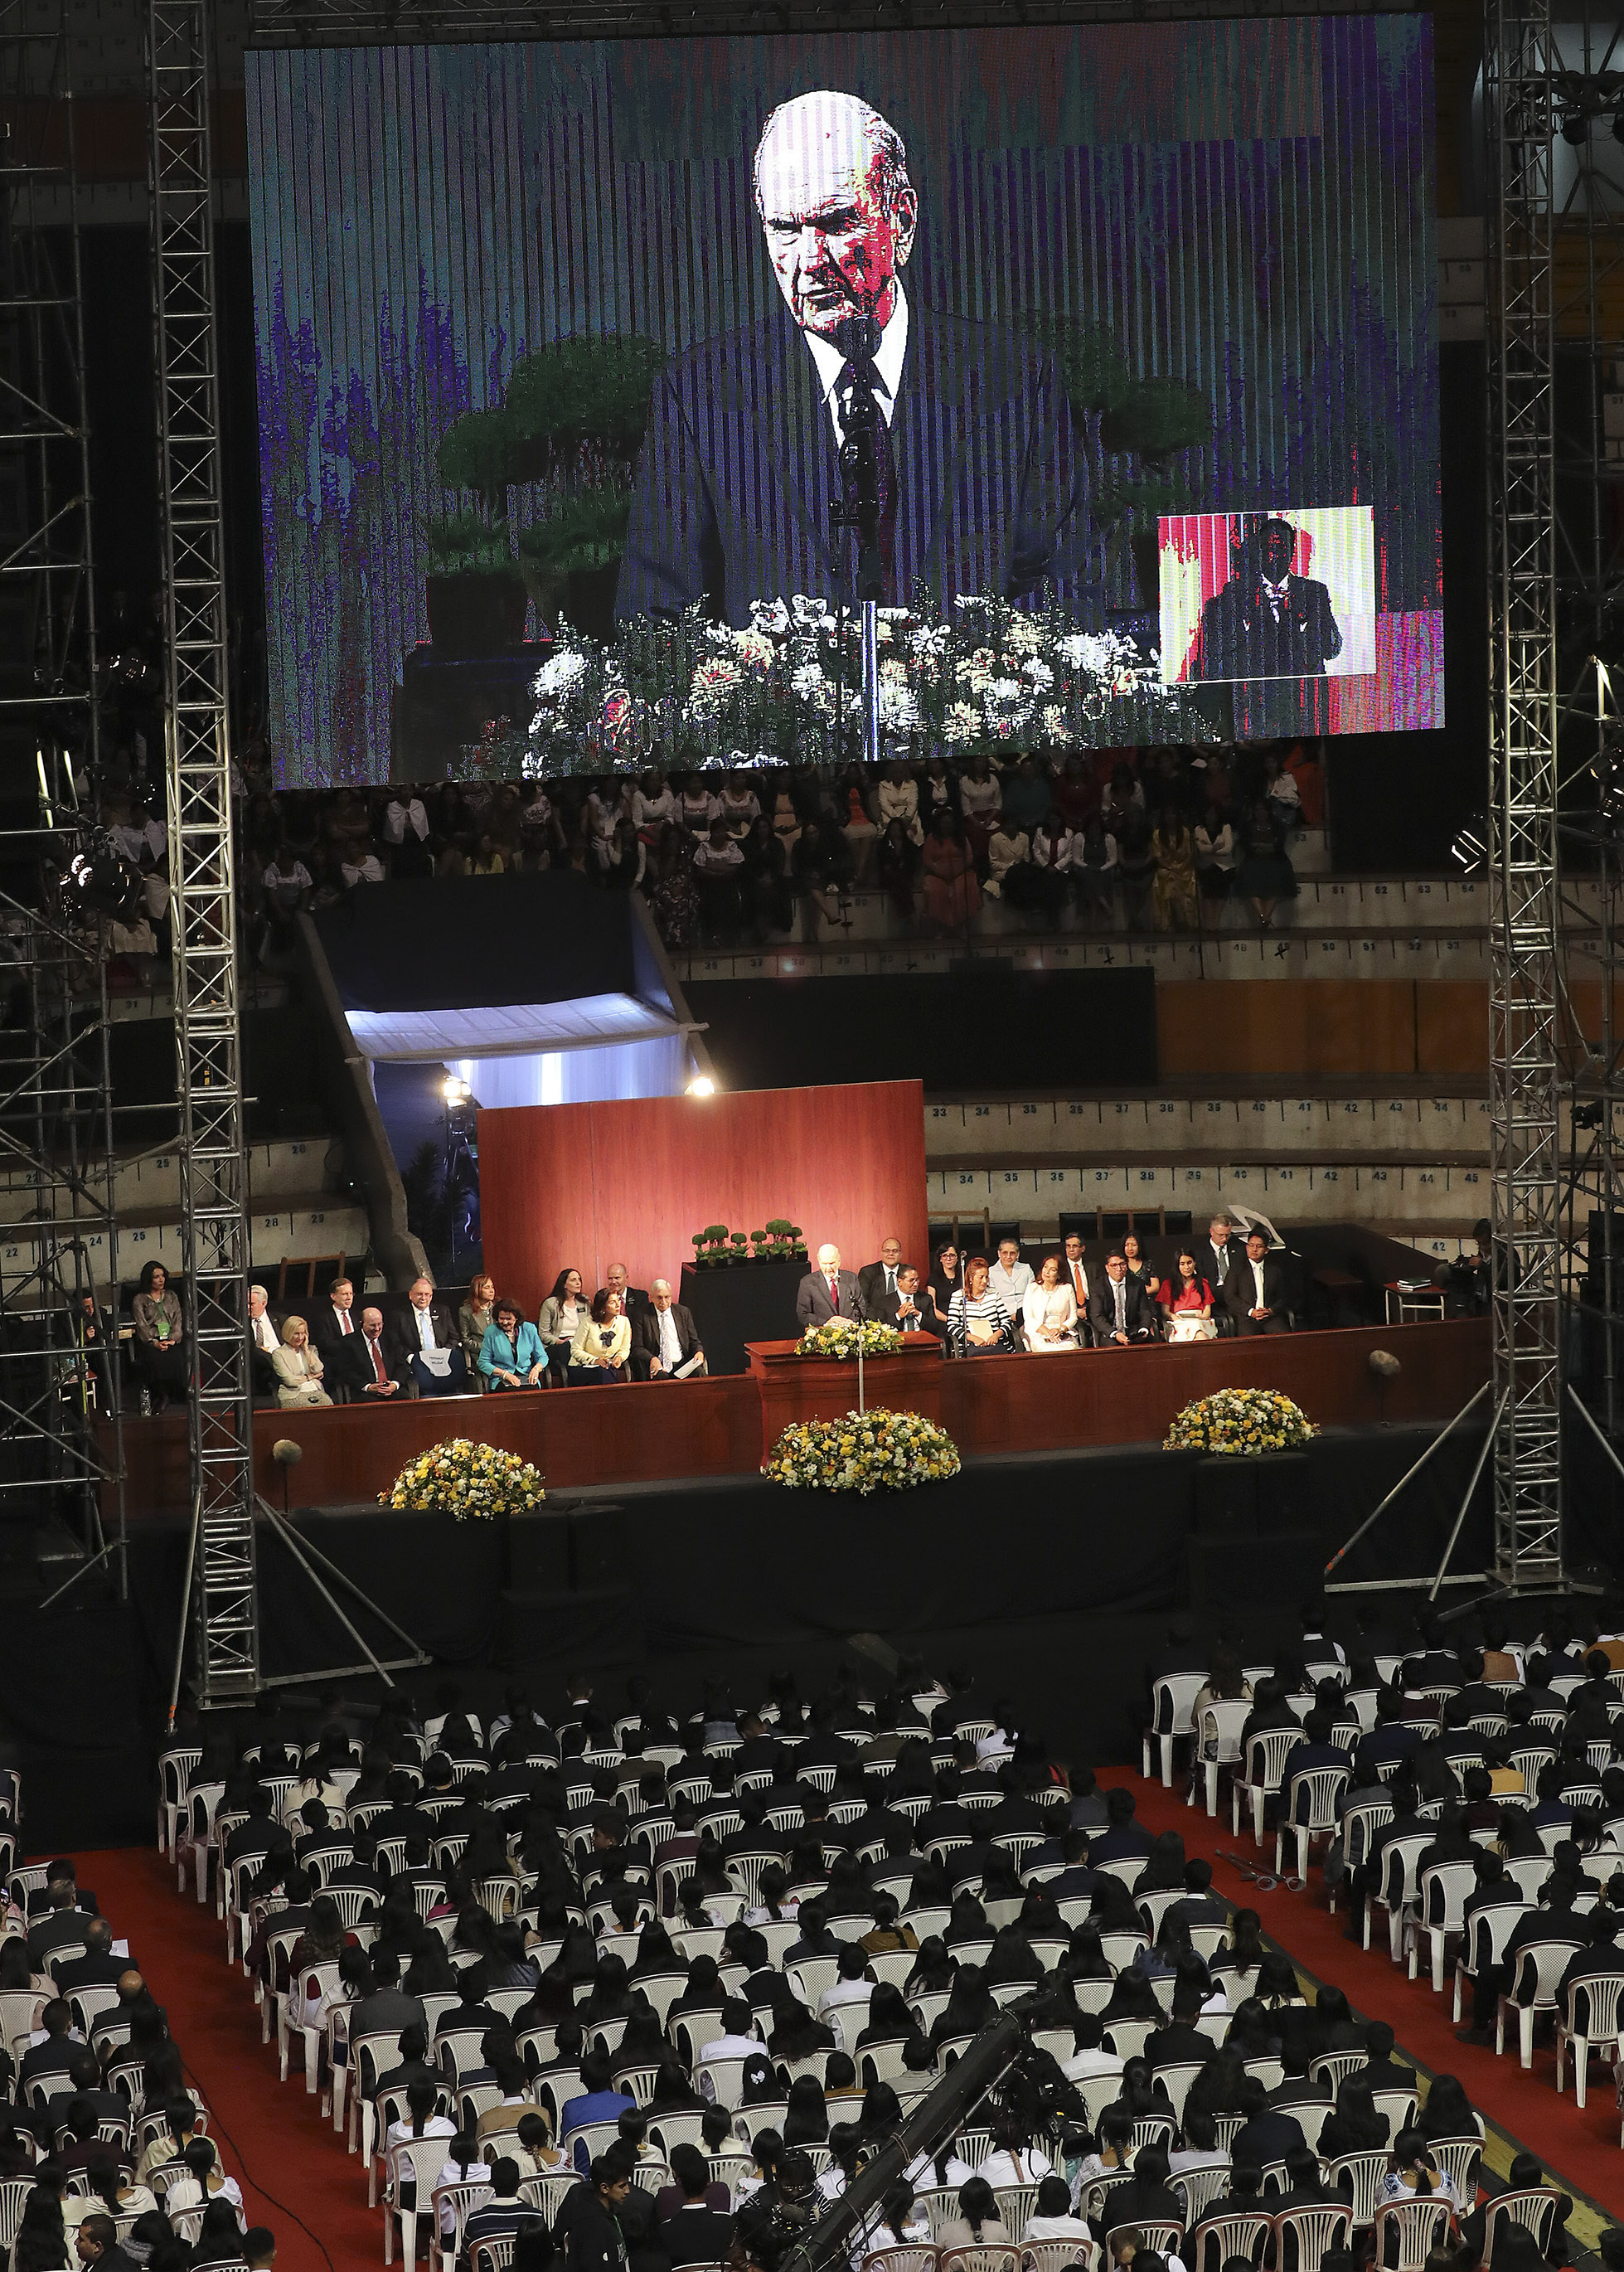 President Russell M. Nelson of The Church of Jesus Christ of Latter-day Saints speaks during a devotional in Quito, Ecuador, on Monday, Aug. 26, 2019.